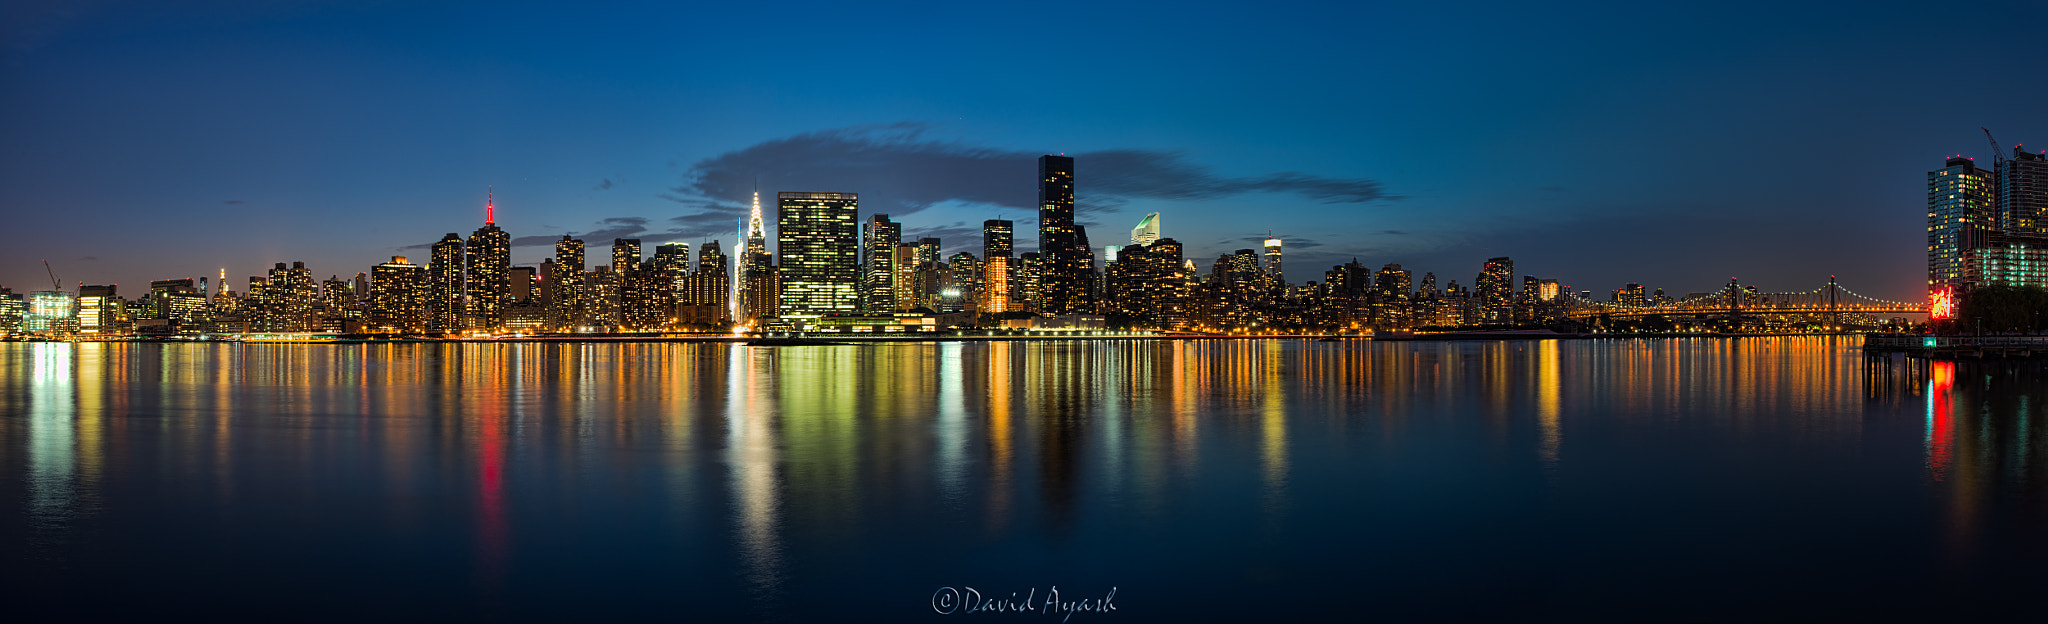 Photograph The Long Apple by David Ayash on 500px